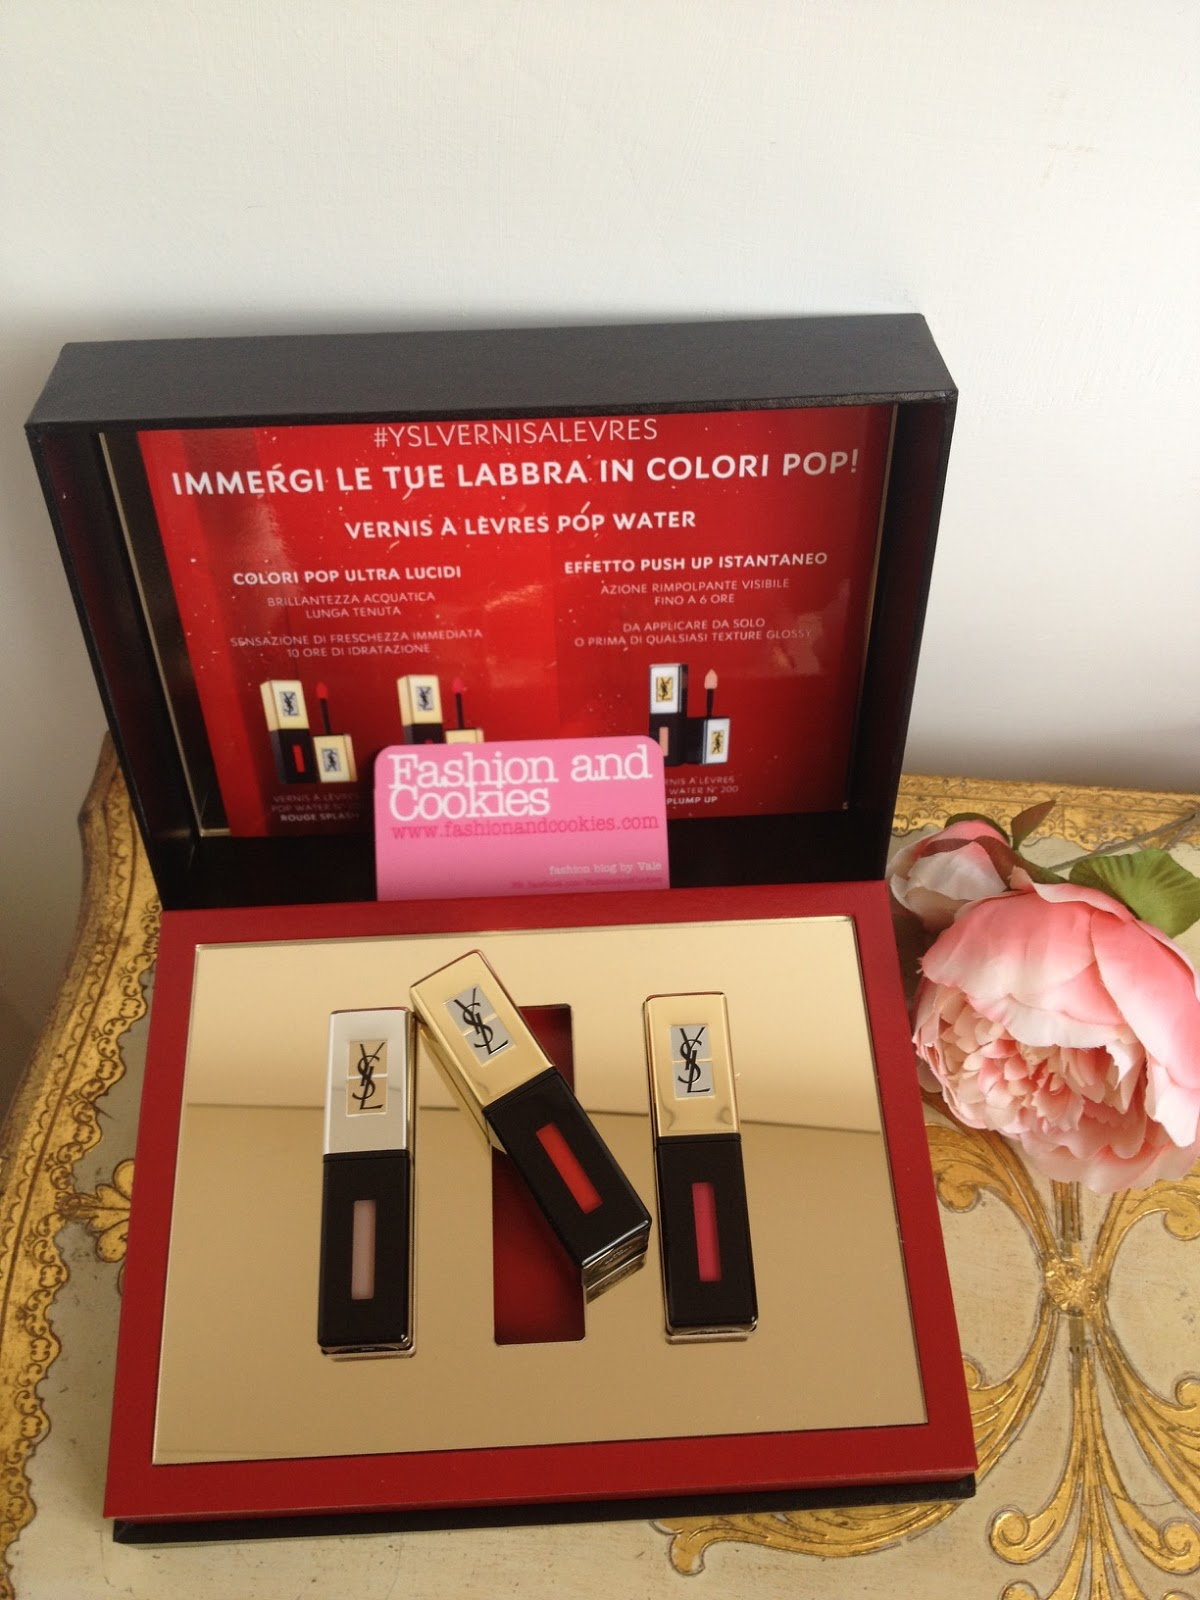 YSL Vernis à Levres POP Water, new Yves Saint Laurent Glossy stains on Fashion and Cookies fashion blog